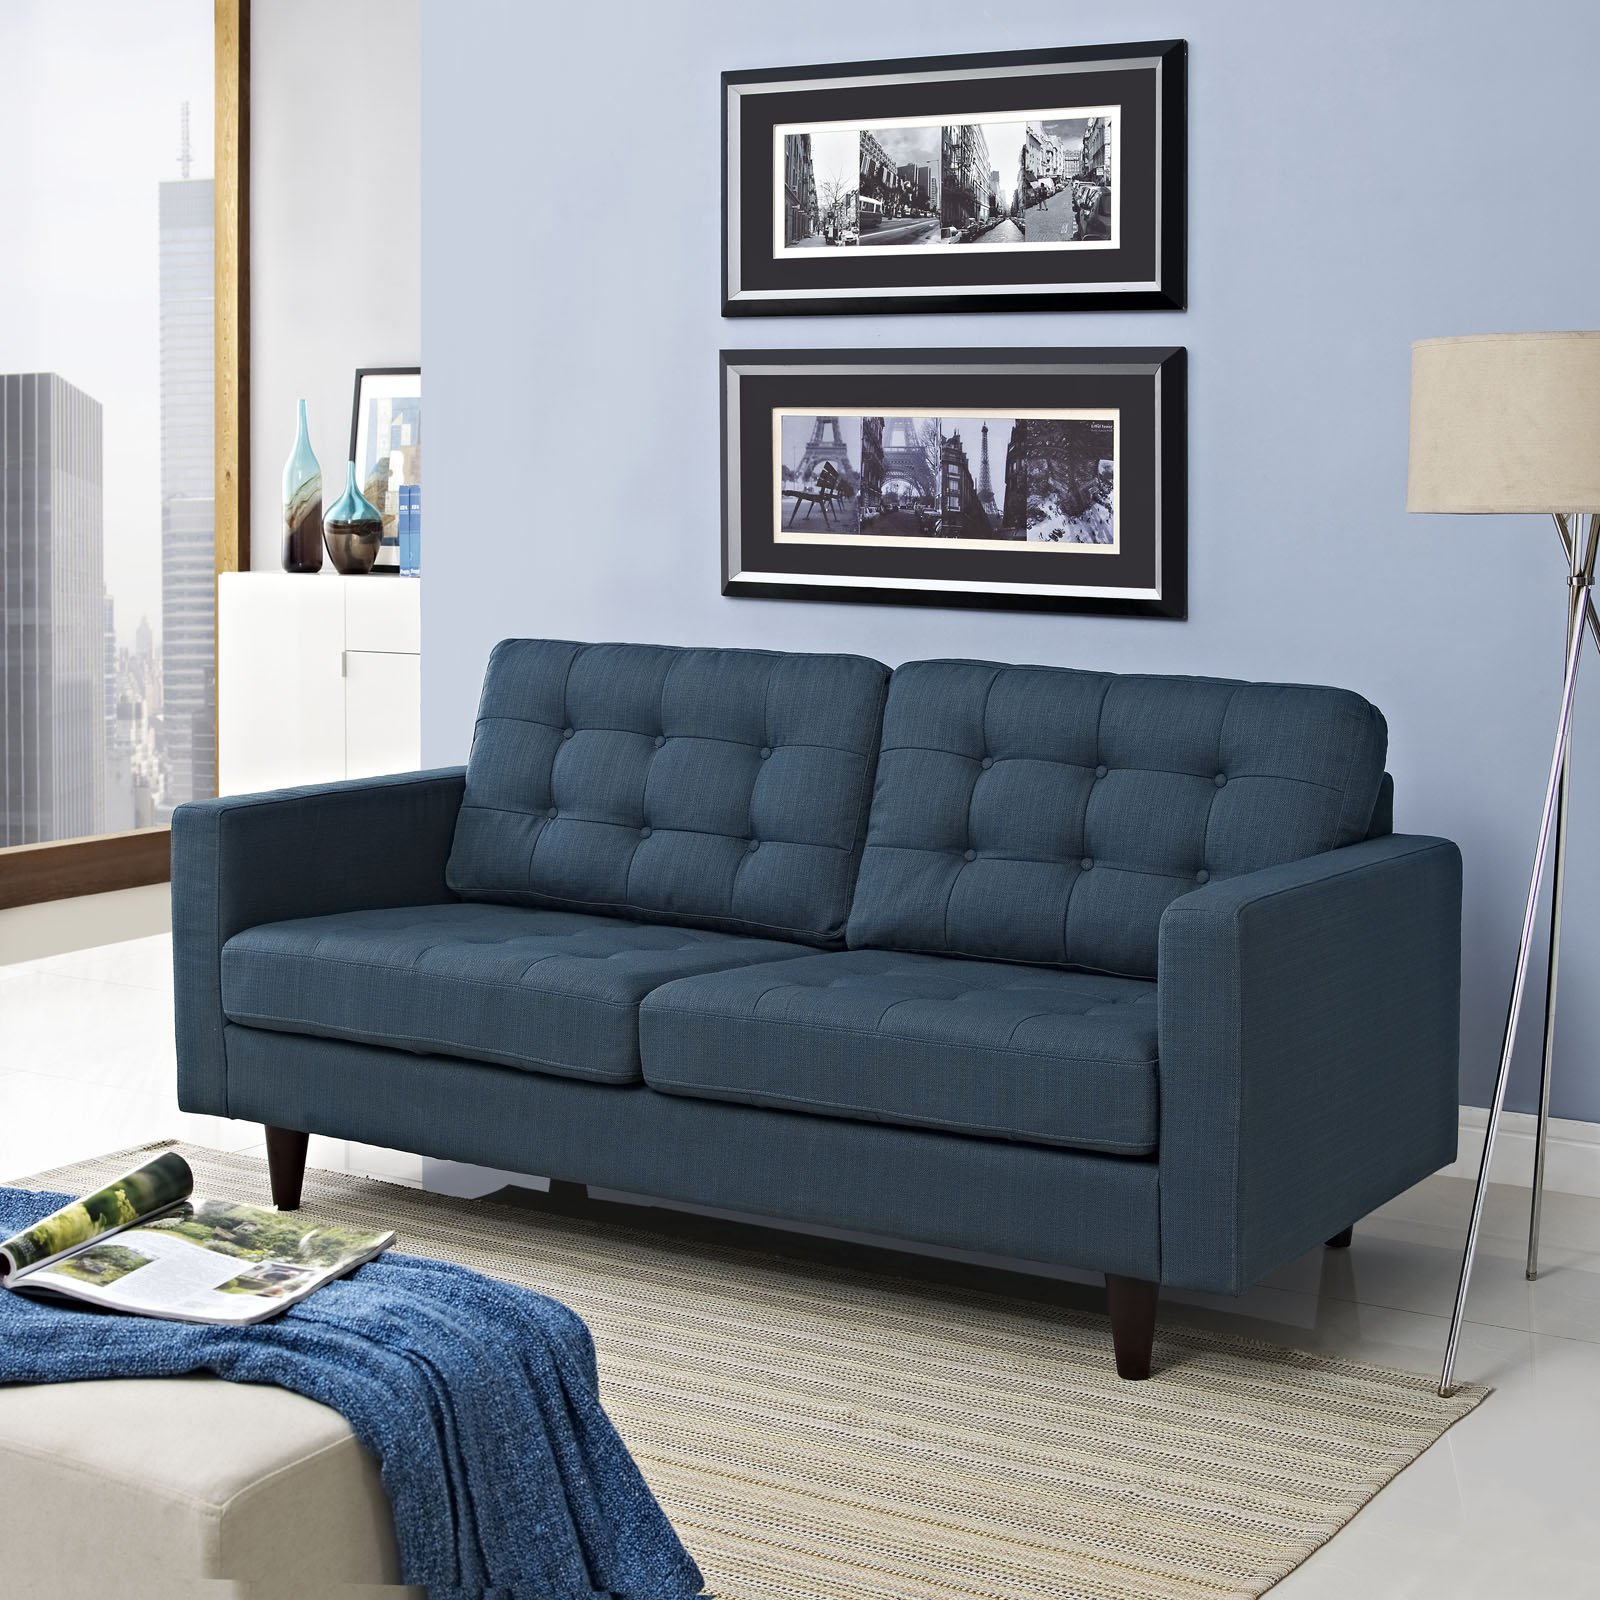 Modway Empress Mid-Century Modern Upholstered Fabric Loveseat In Azure by Modway (Image #5)